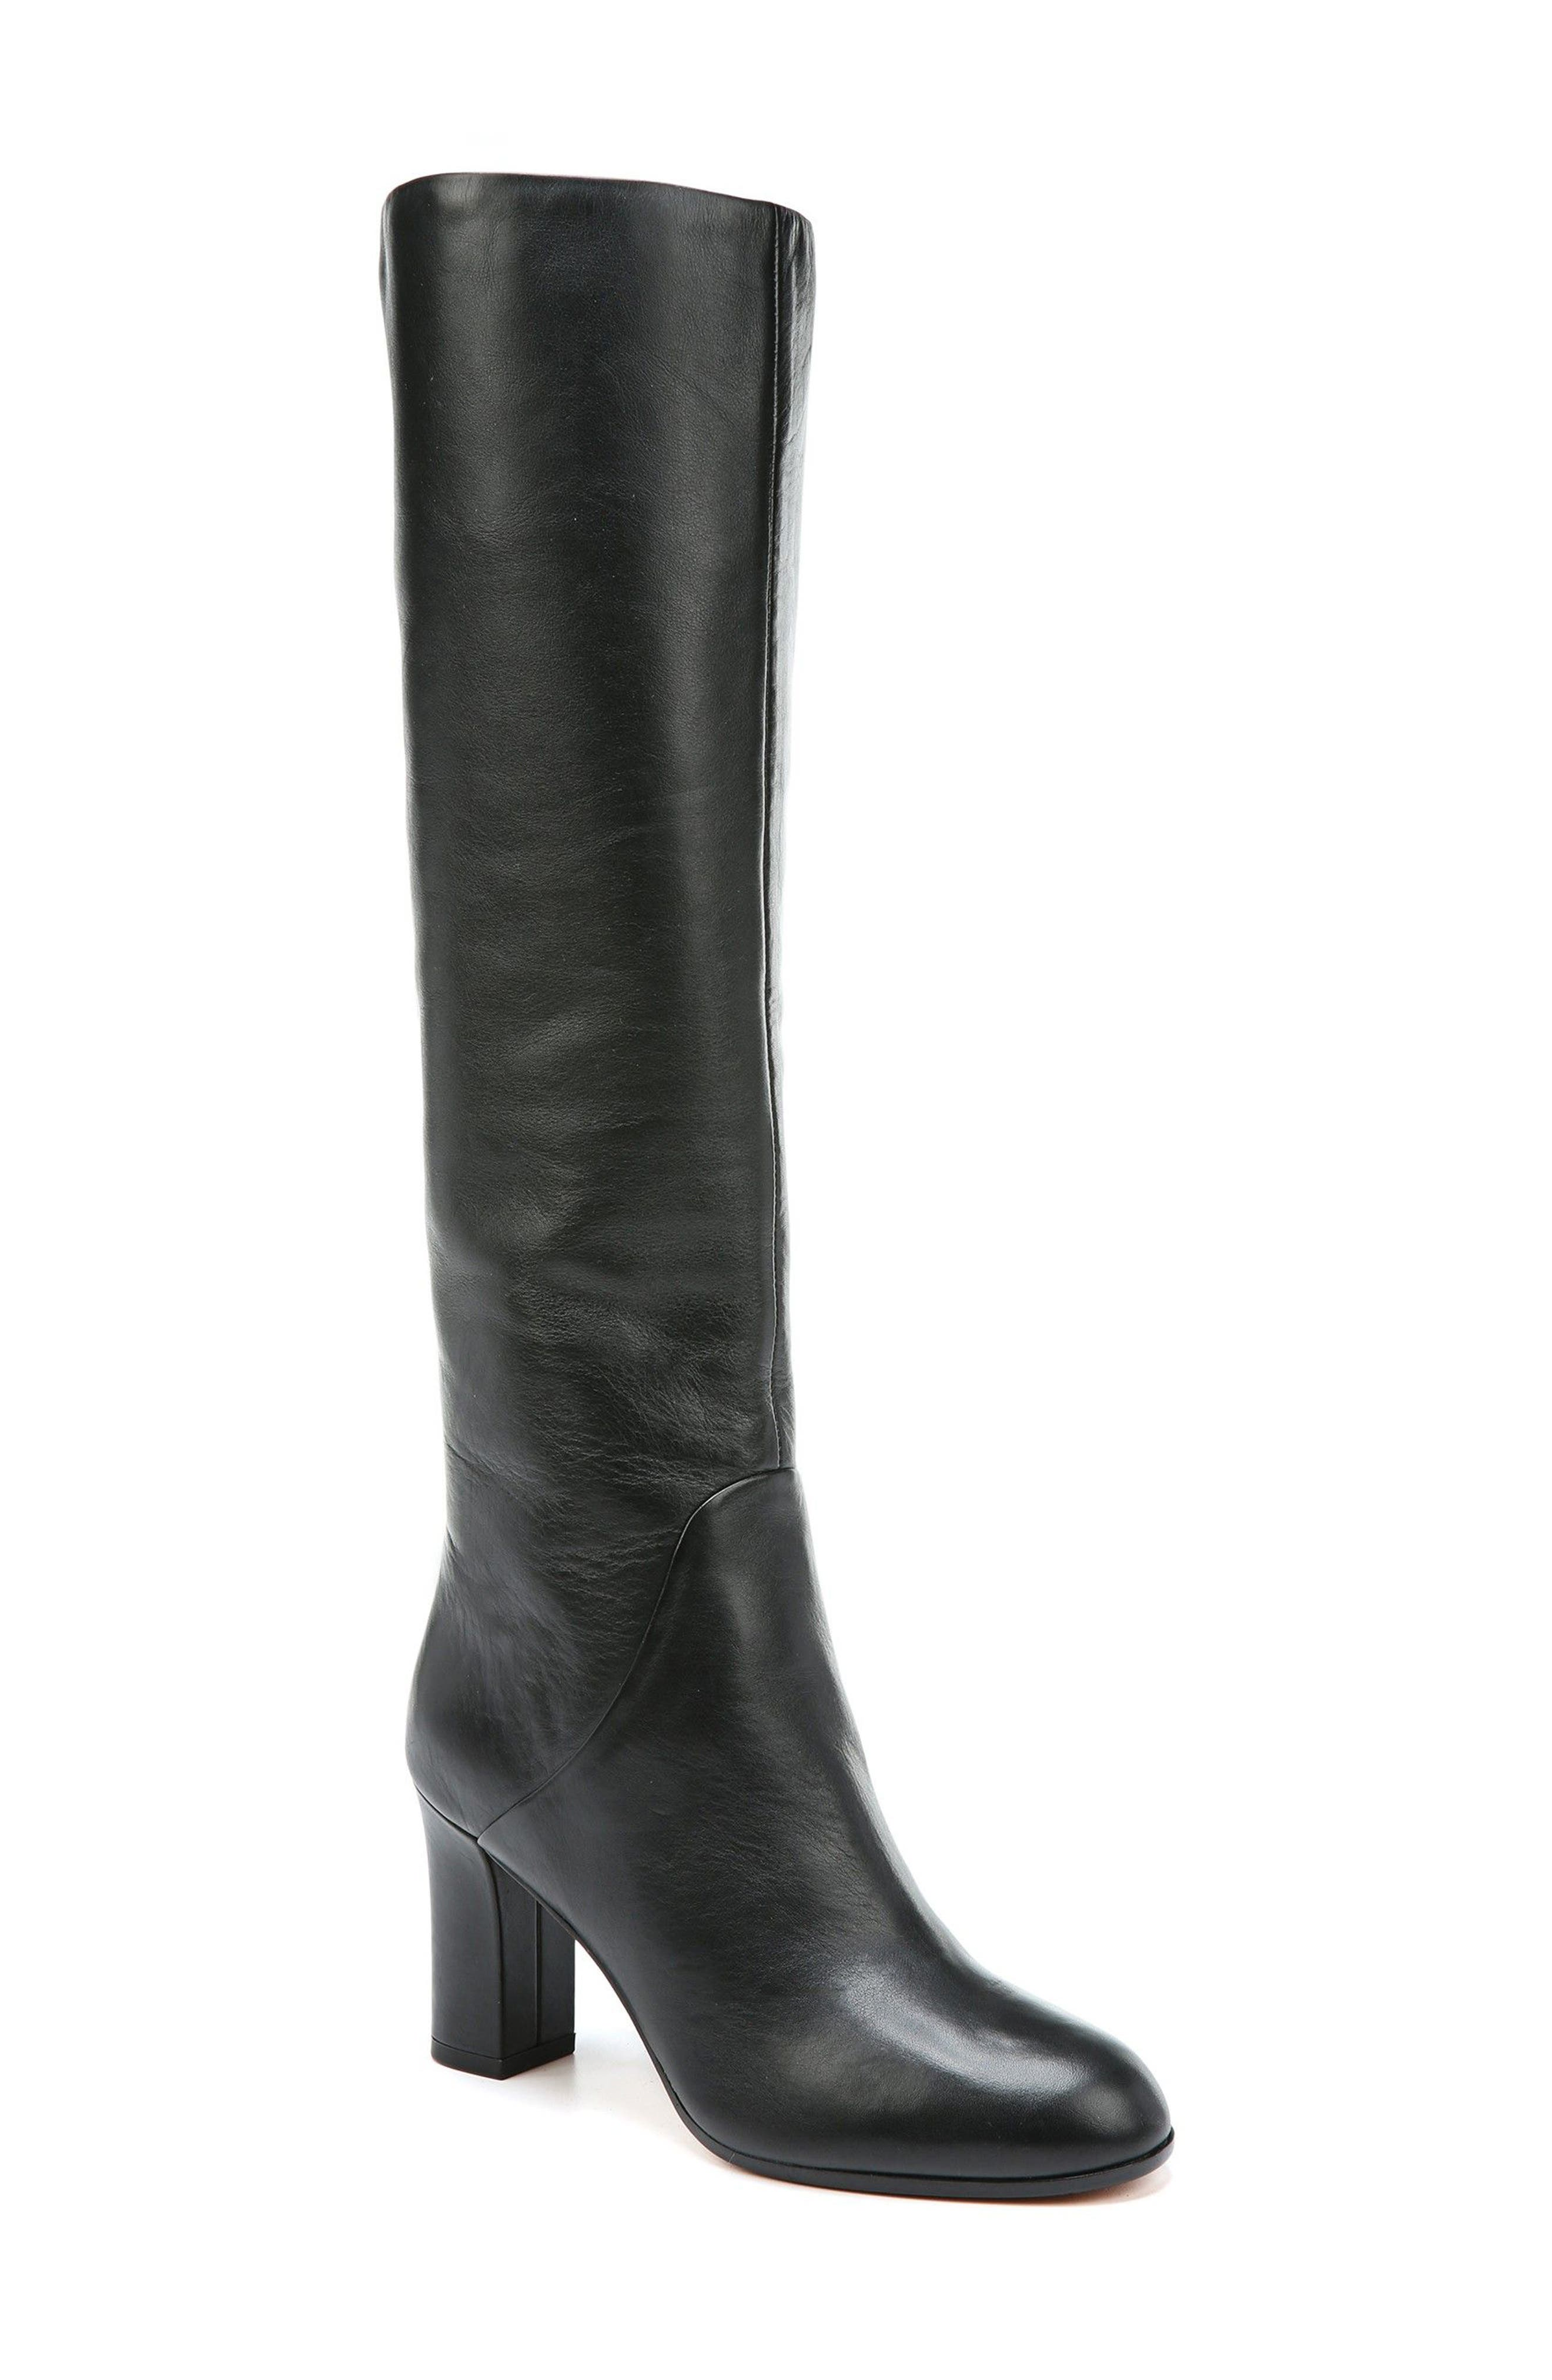 Soho Knee High Boot,                         Main,                         color, 002